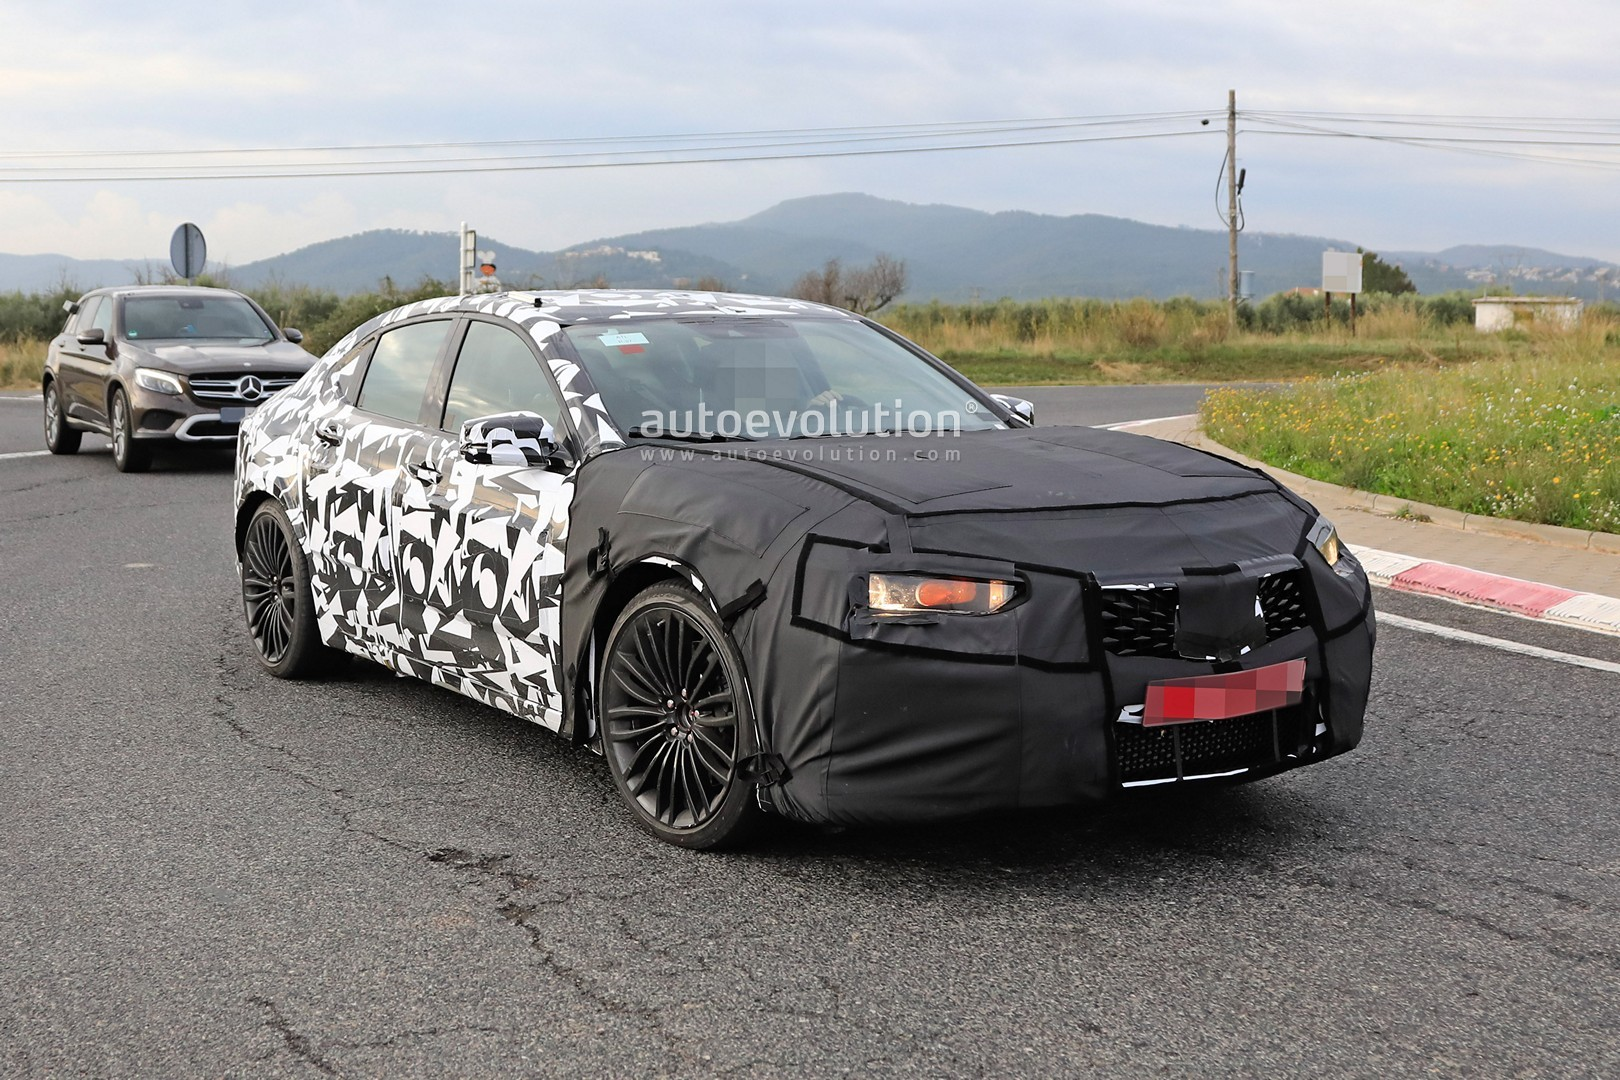 2020 Acura TLX Type S Spied With Audi S4 And AMG C43 V6